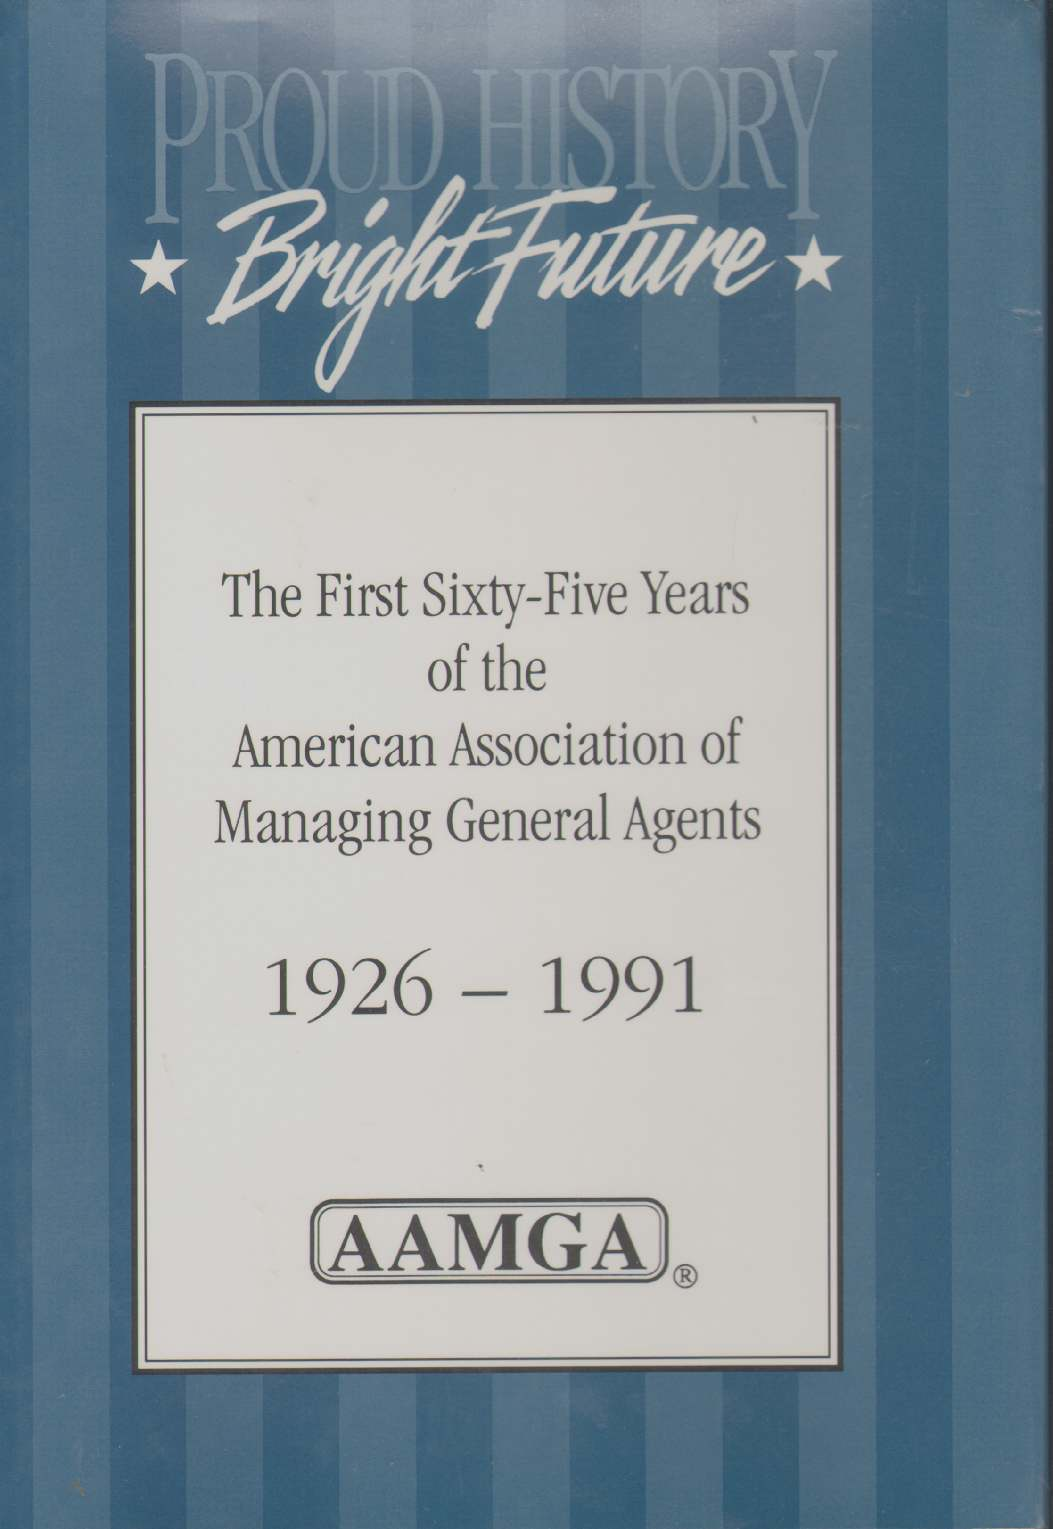 Image for PROUD HISTORY, BRIGHT FUTURE The First Sixty-Five Years of the American Association of Managing General Agents, 1926-1991